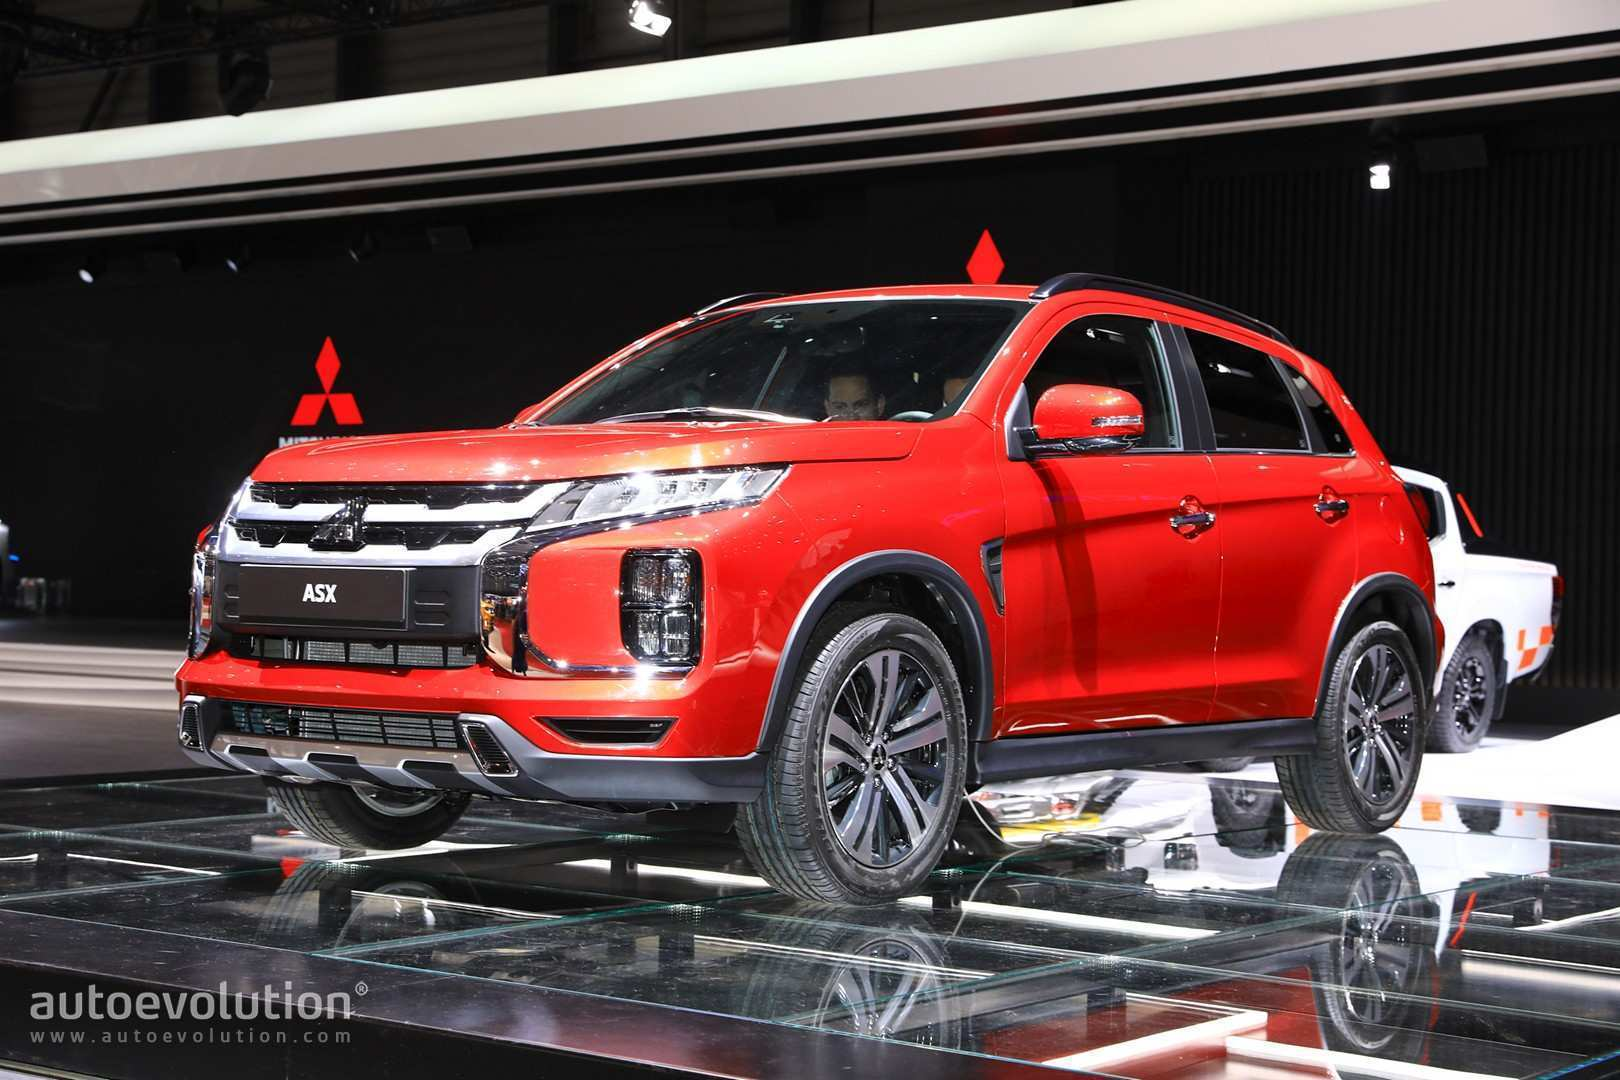 53 The Mitsubishi Asx 2020 Model Price And Release Date